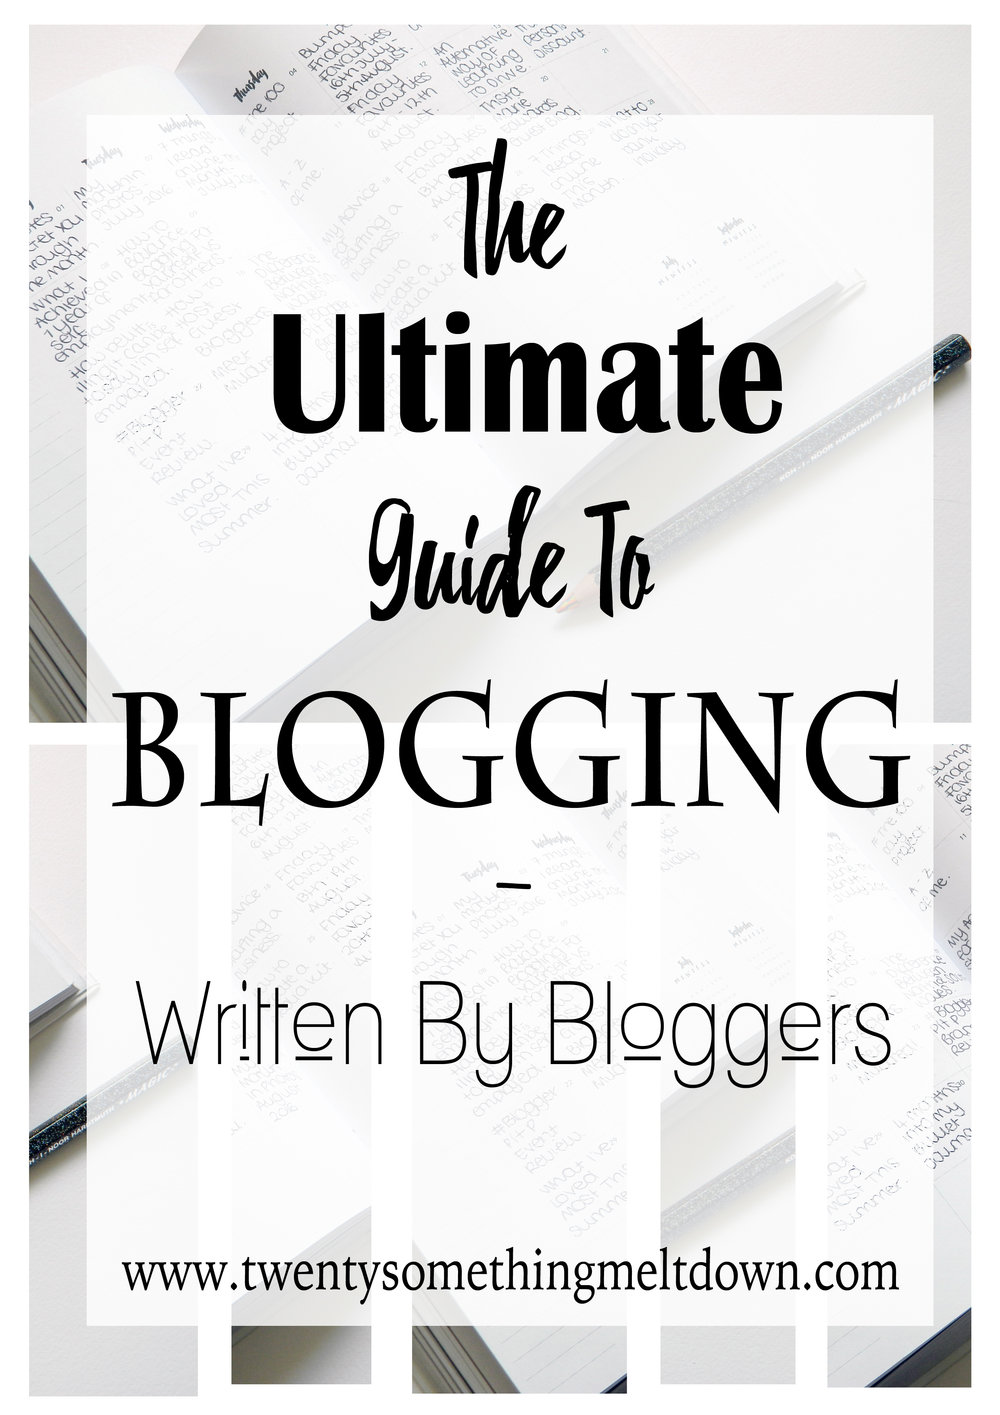 ultimateguidetoblogging.jpg